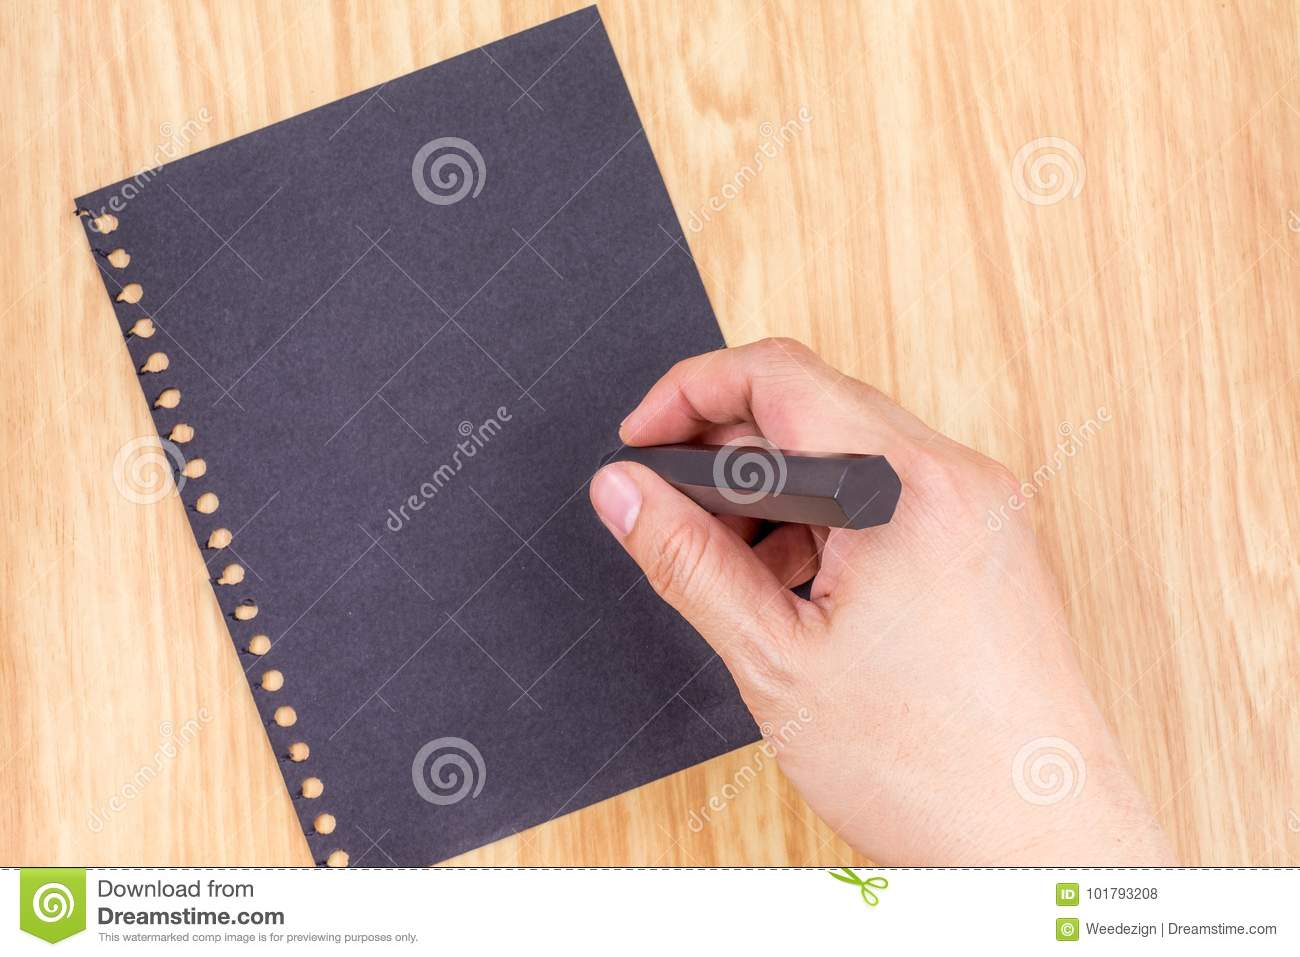 Hand Writing At Black Paperl On Wood Table Top Business Brainstorming Concept Mock Up For Adding Your Text Stock Photo Image Of Office Document 101793208